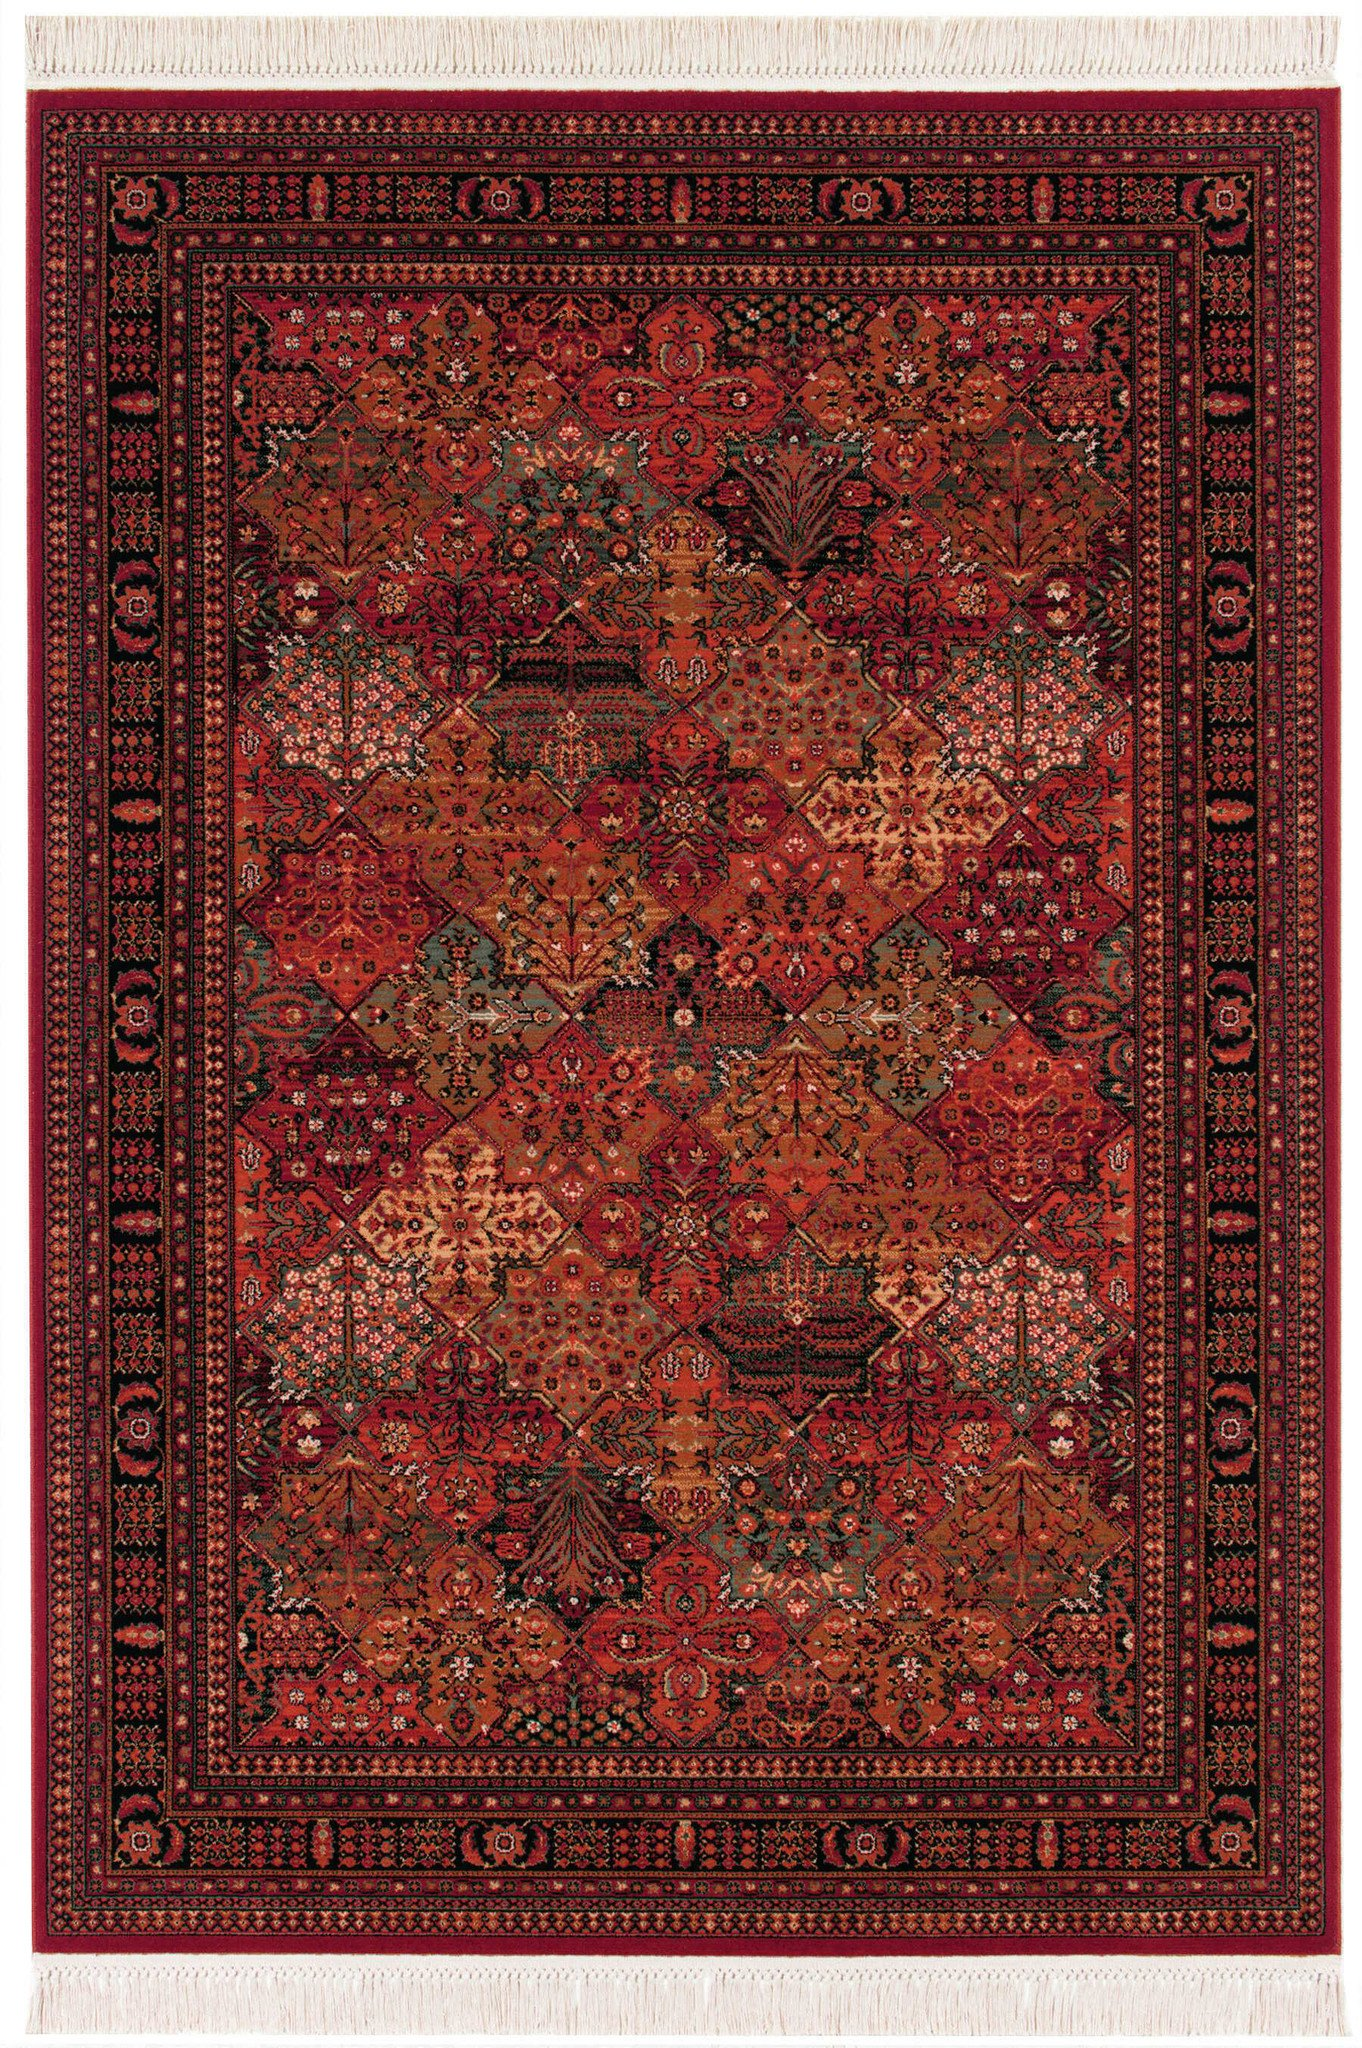 Couristan Kashimar Imperial Baktiari Area Rug In 2020 Couristan Area Rugs Red Rugs